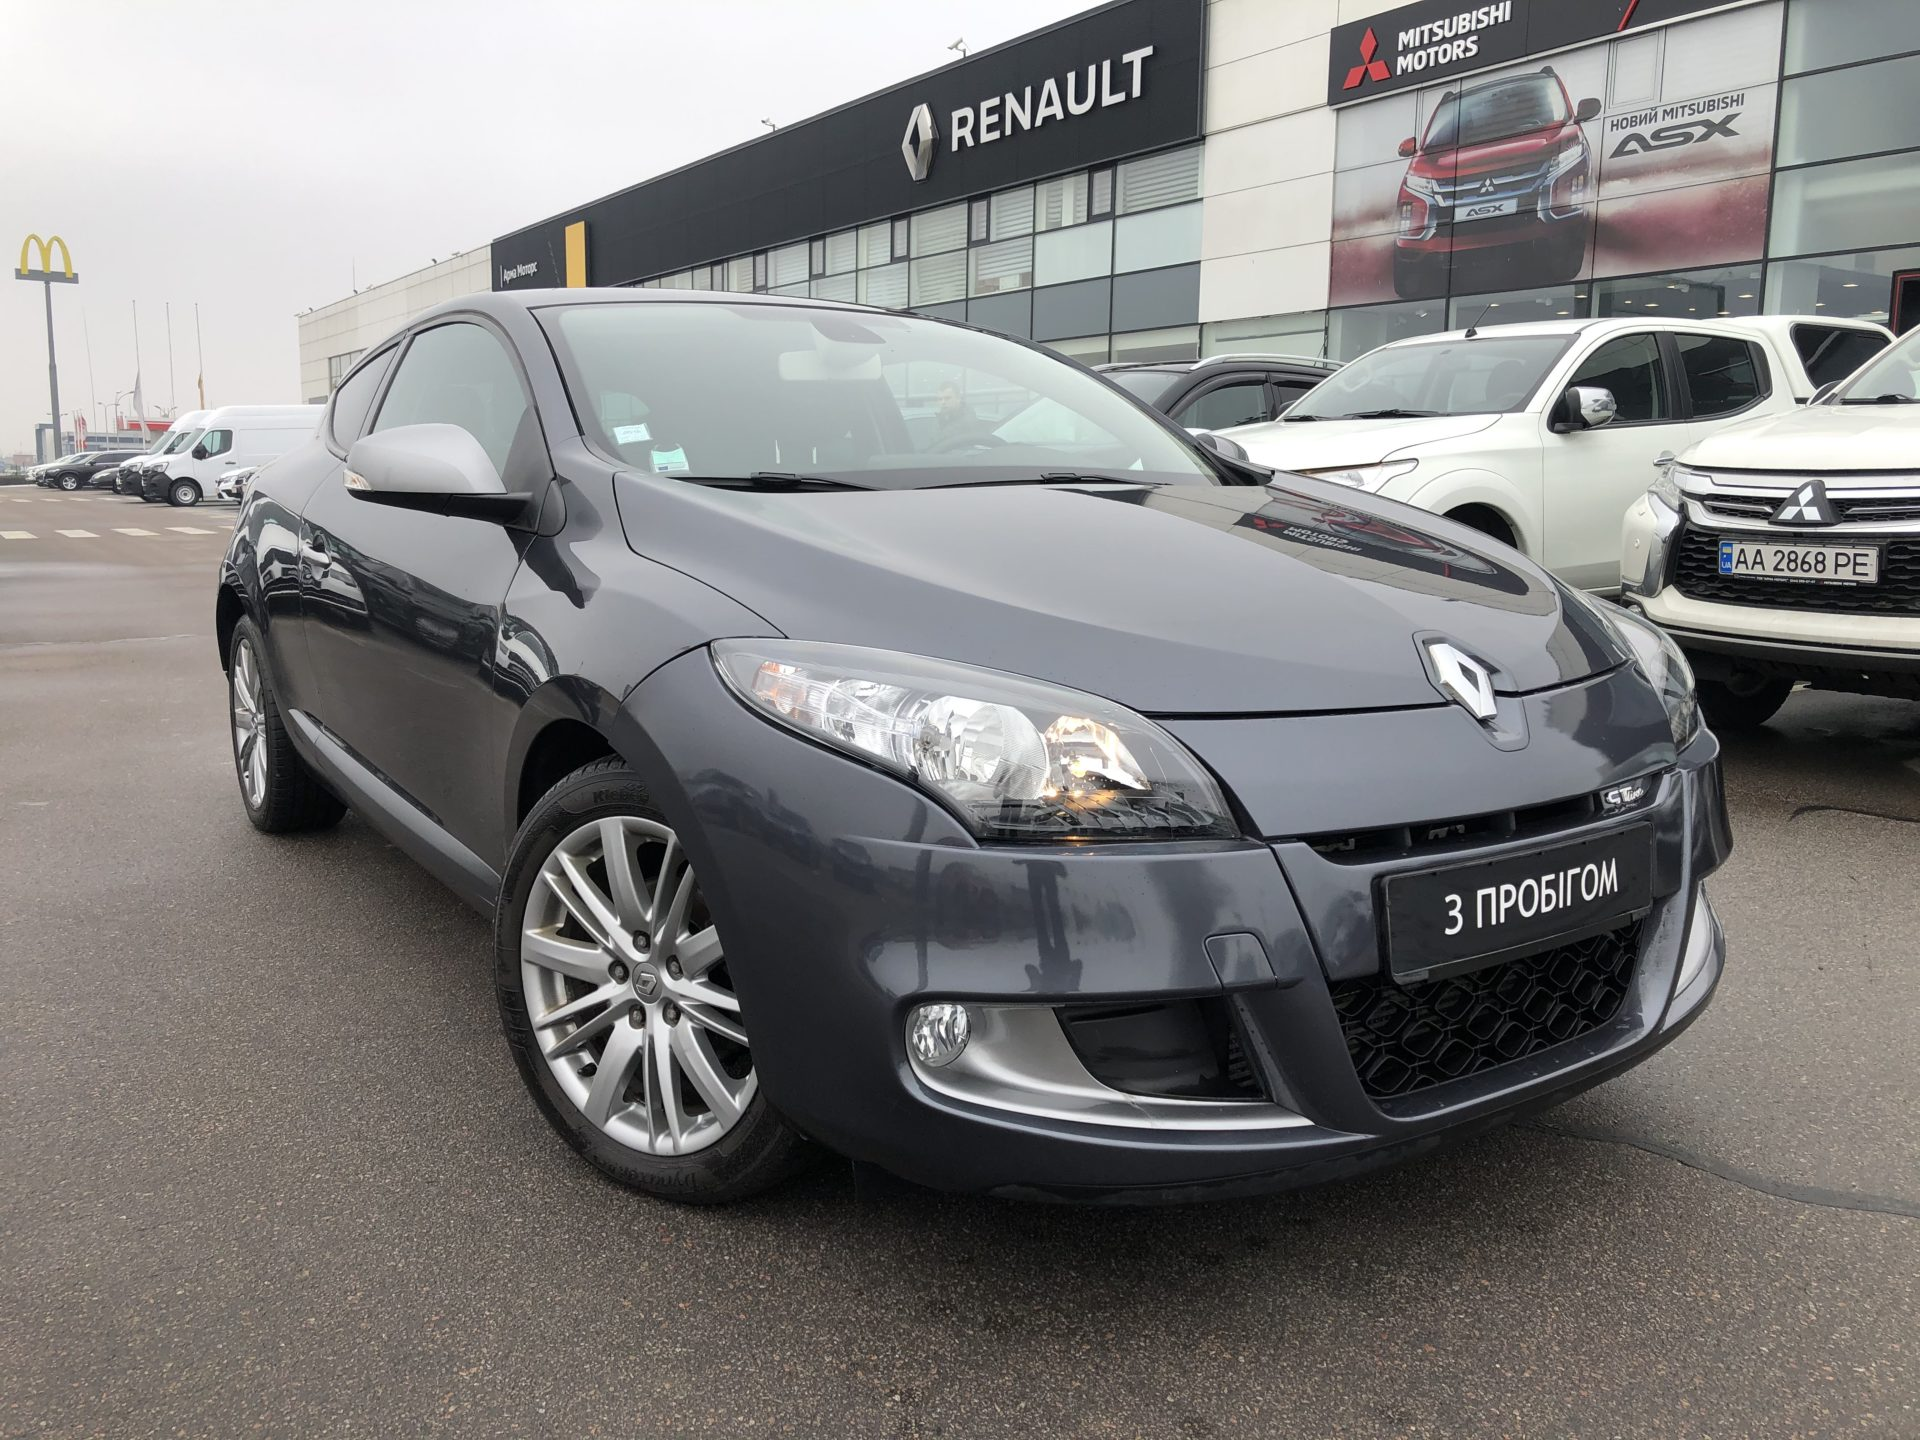 Renault MEGANE Coupe фото 1